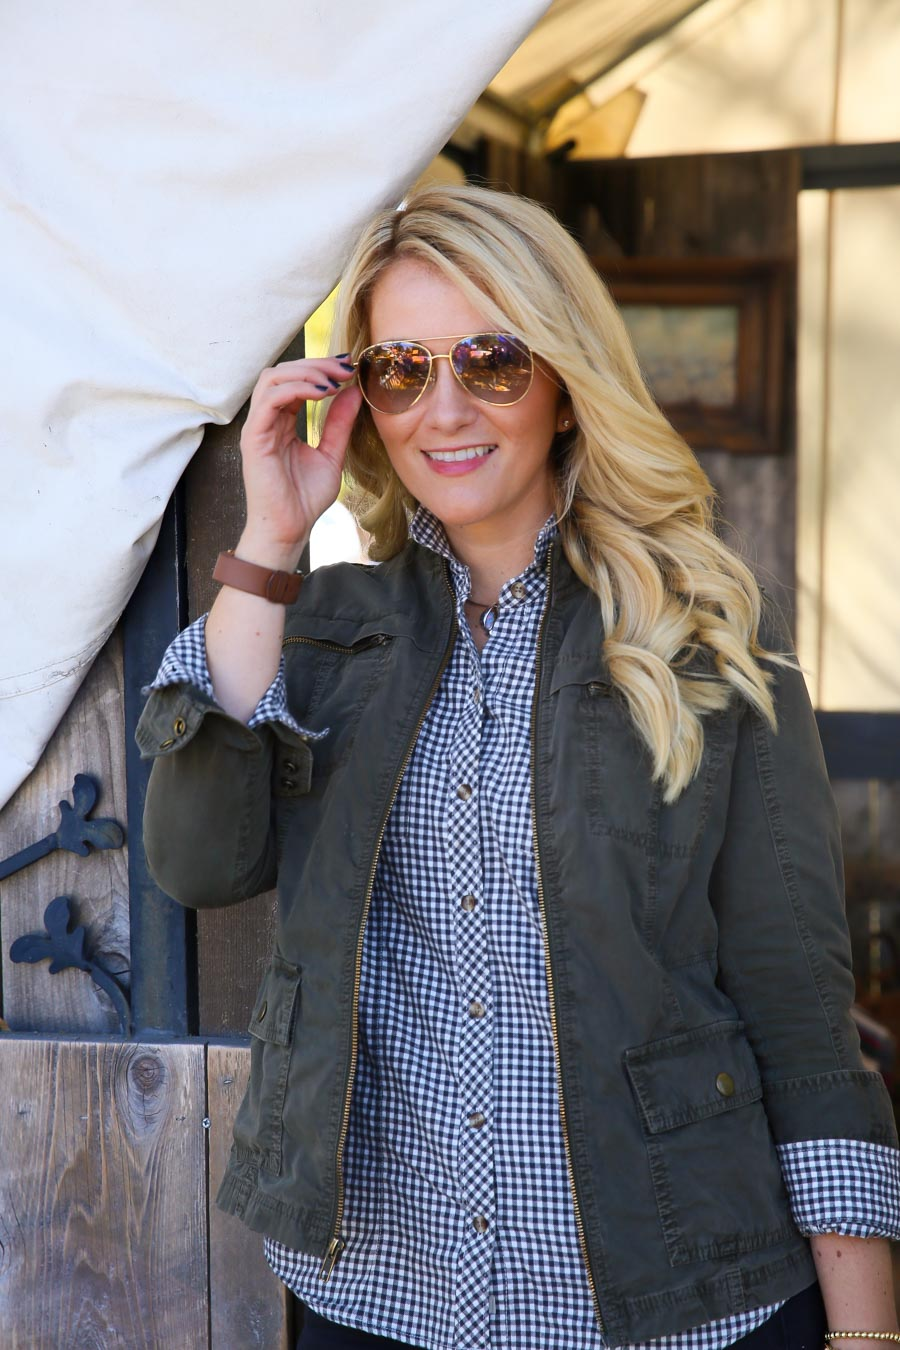 How to Dress Up Flannel Shirts with Jeans Outfit for Women